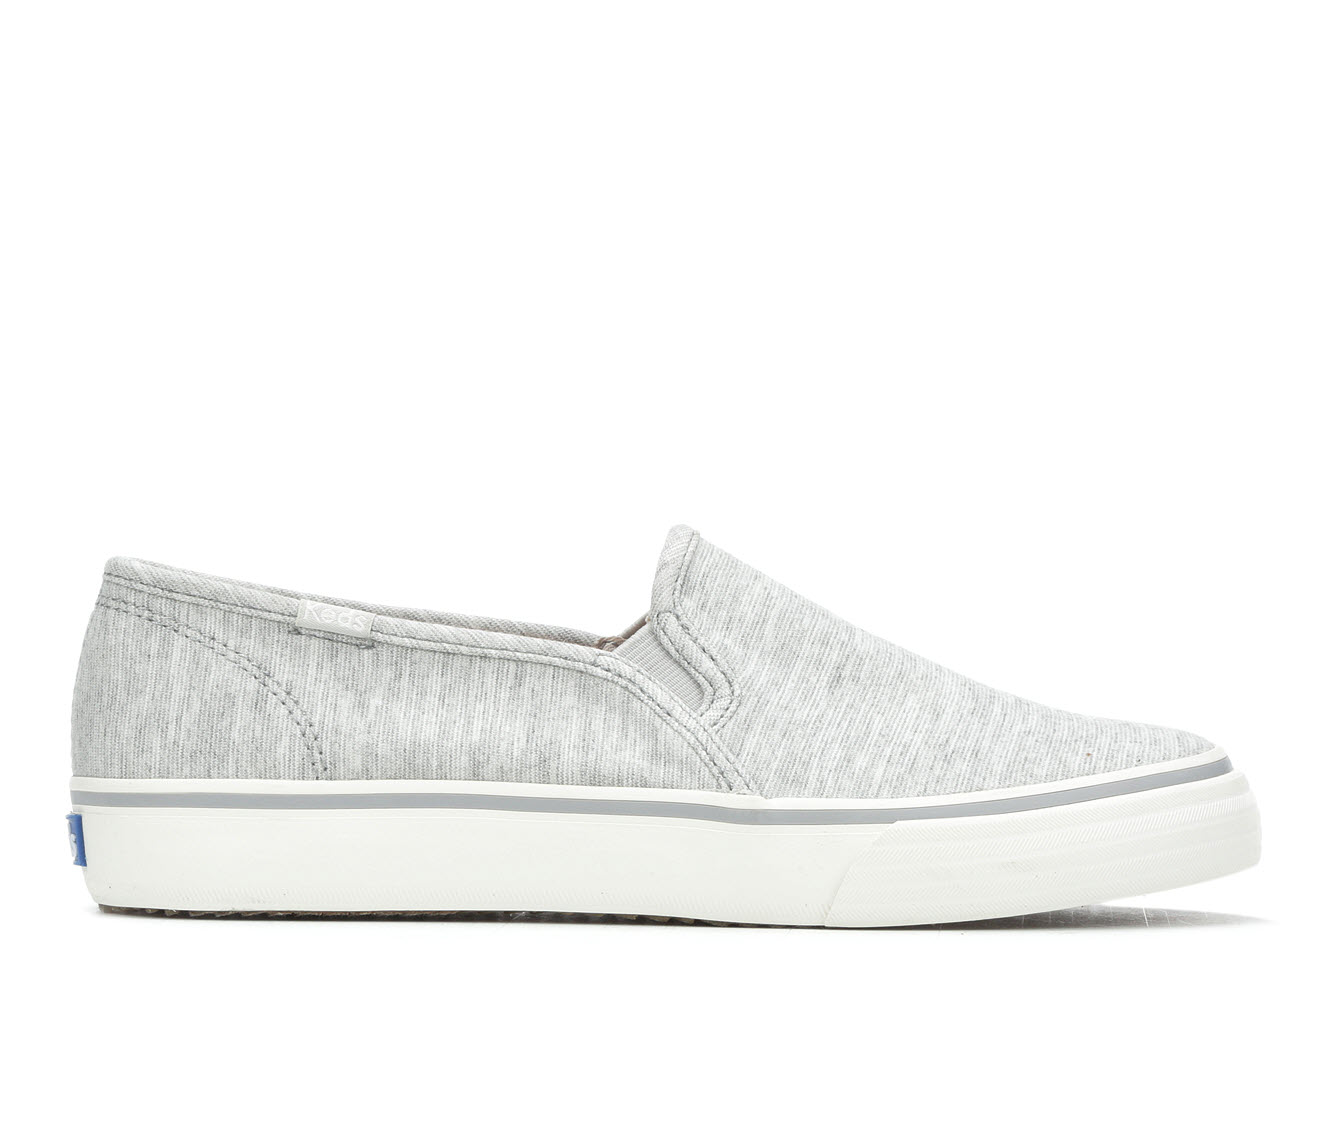 Keds Double Dckr St Jerse Women's Shoe (Gray Canvas)